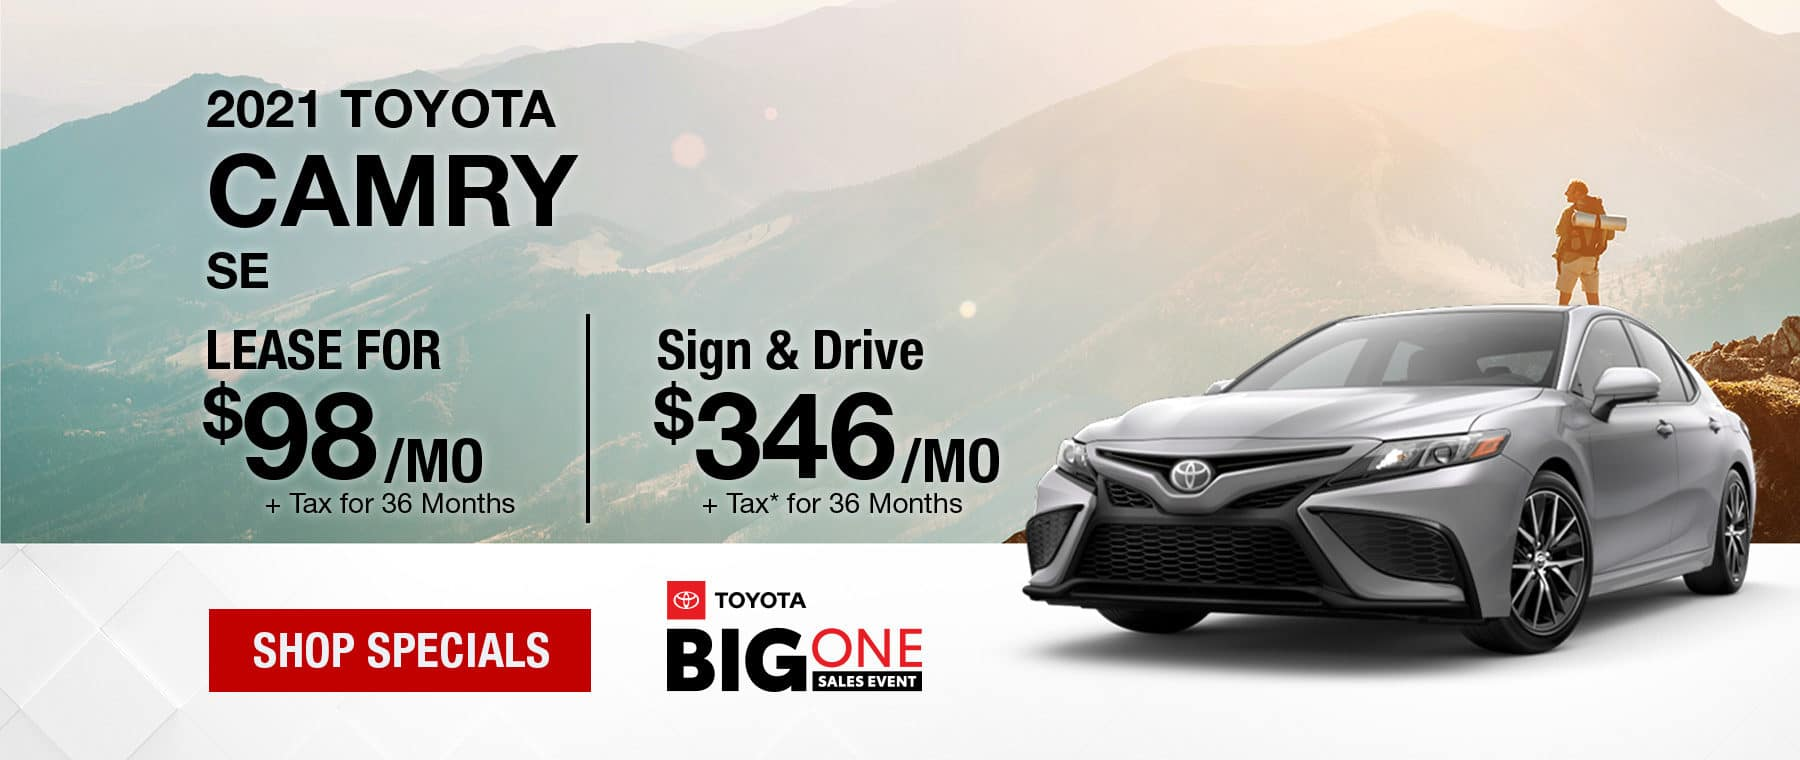 2021 Toyota Camry Banner